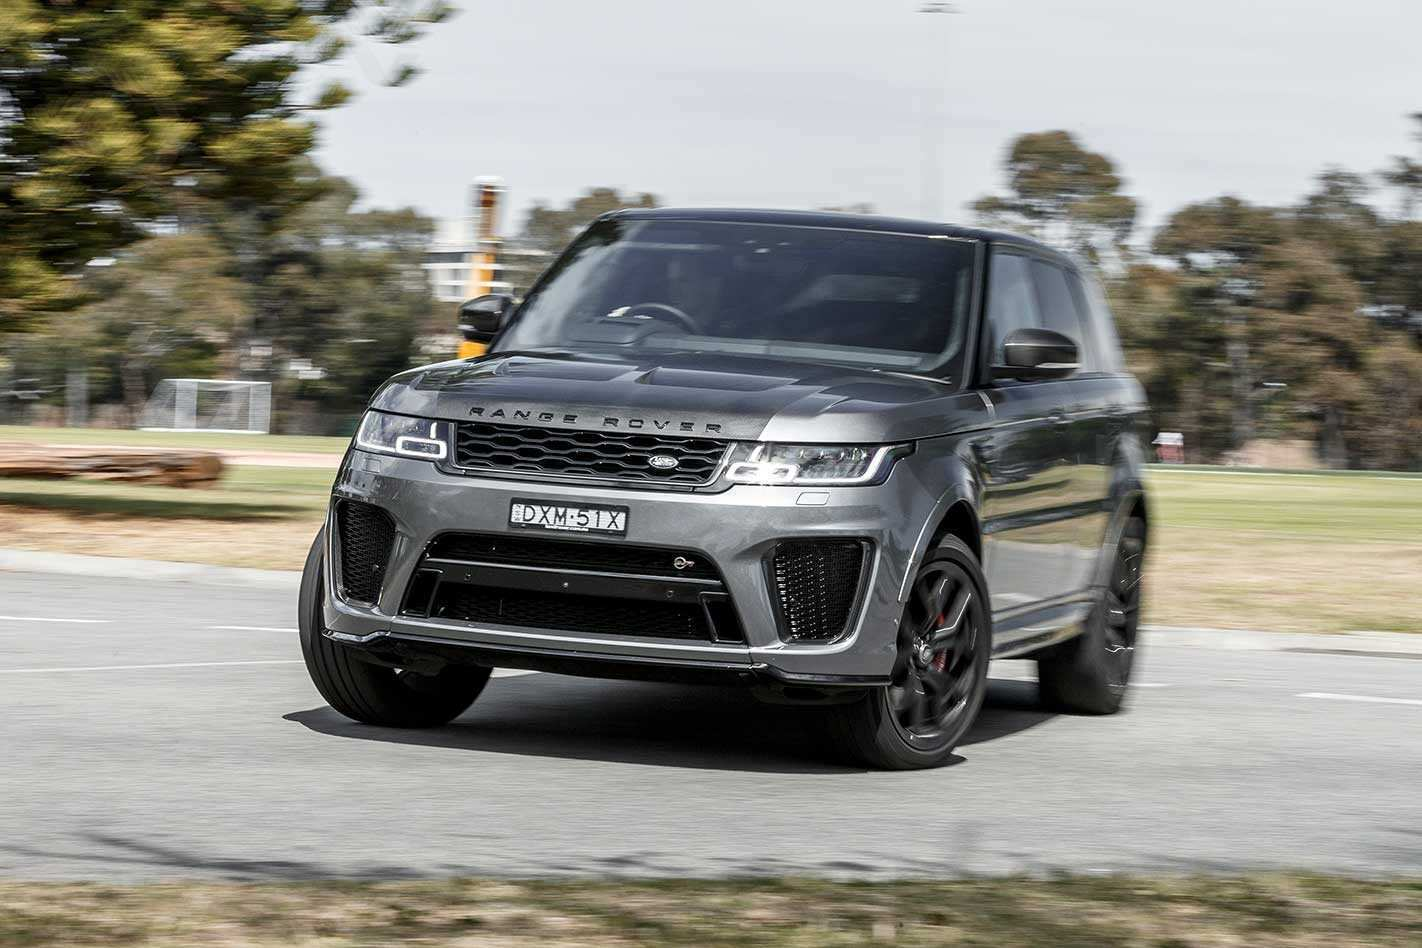 37 New 2019 Land Rover Svr Concept and Review